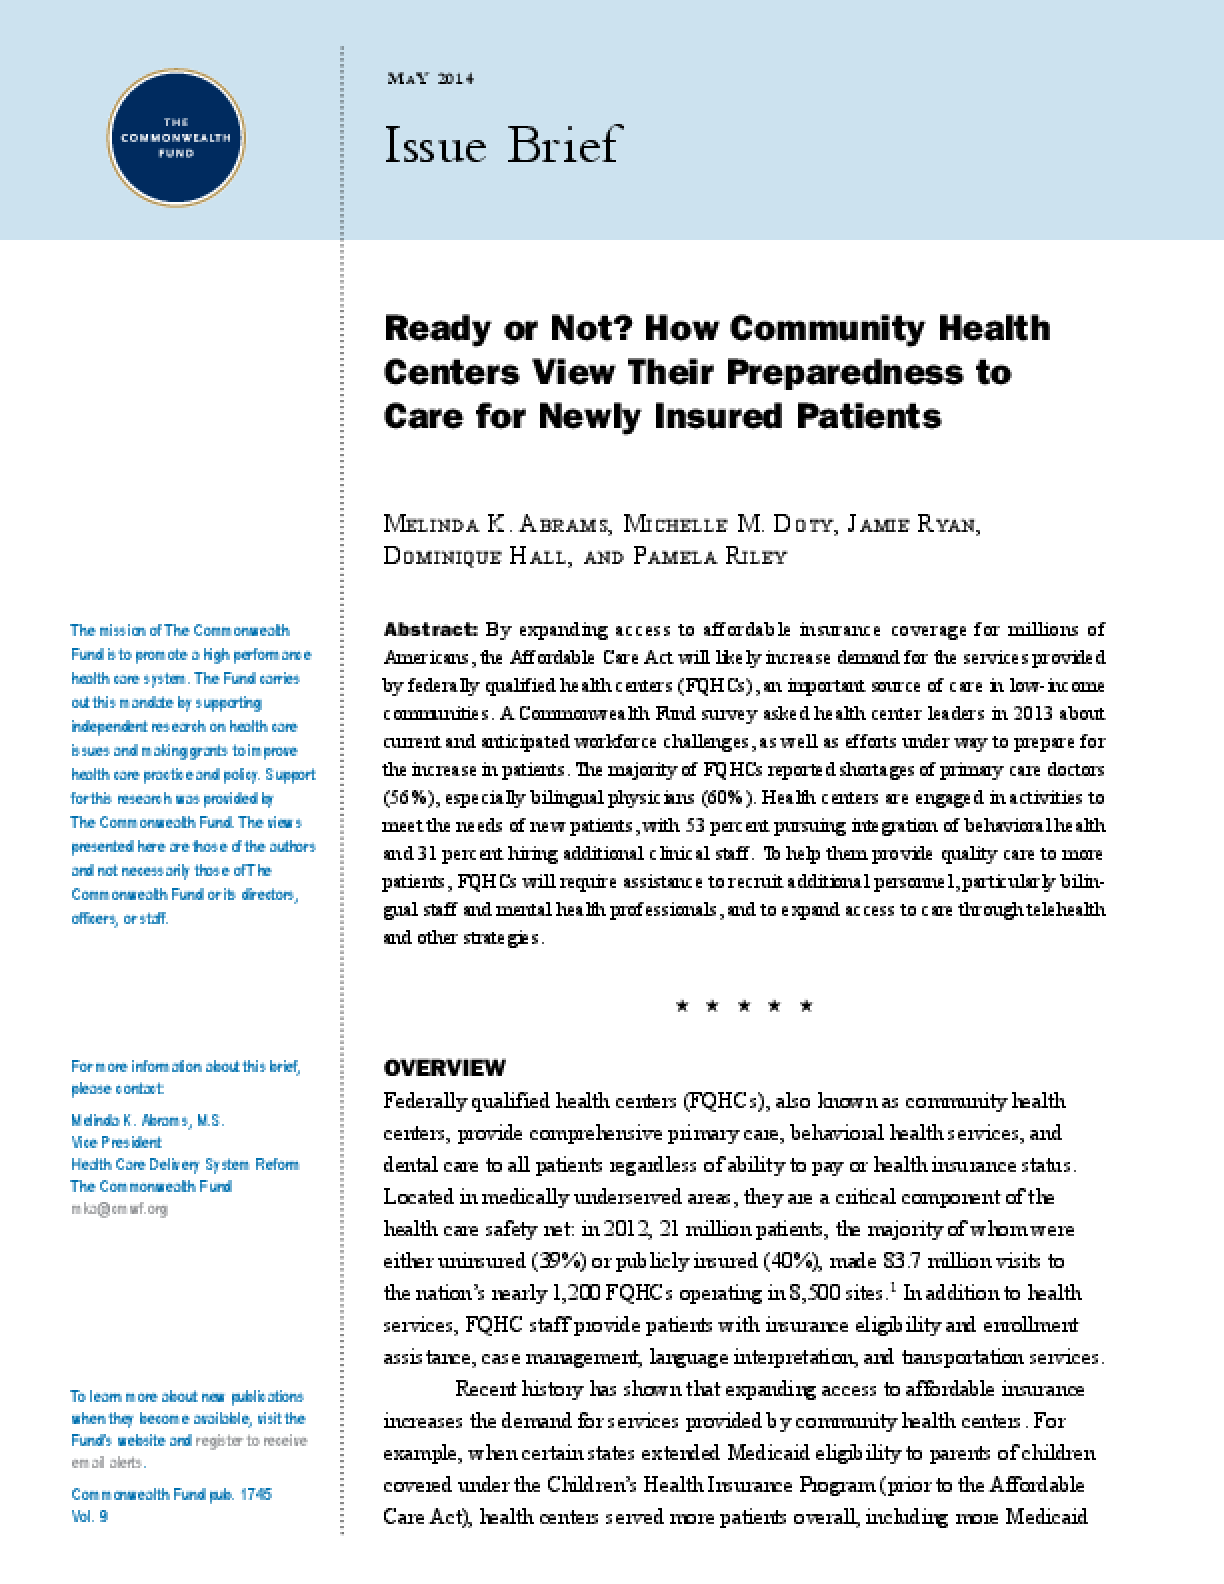 Ready or Not? How Community Health Centers View Their Preparedness to Care for Newly Insured Patients